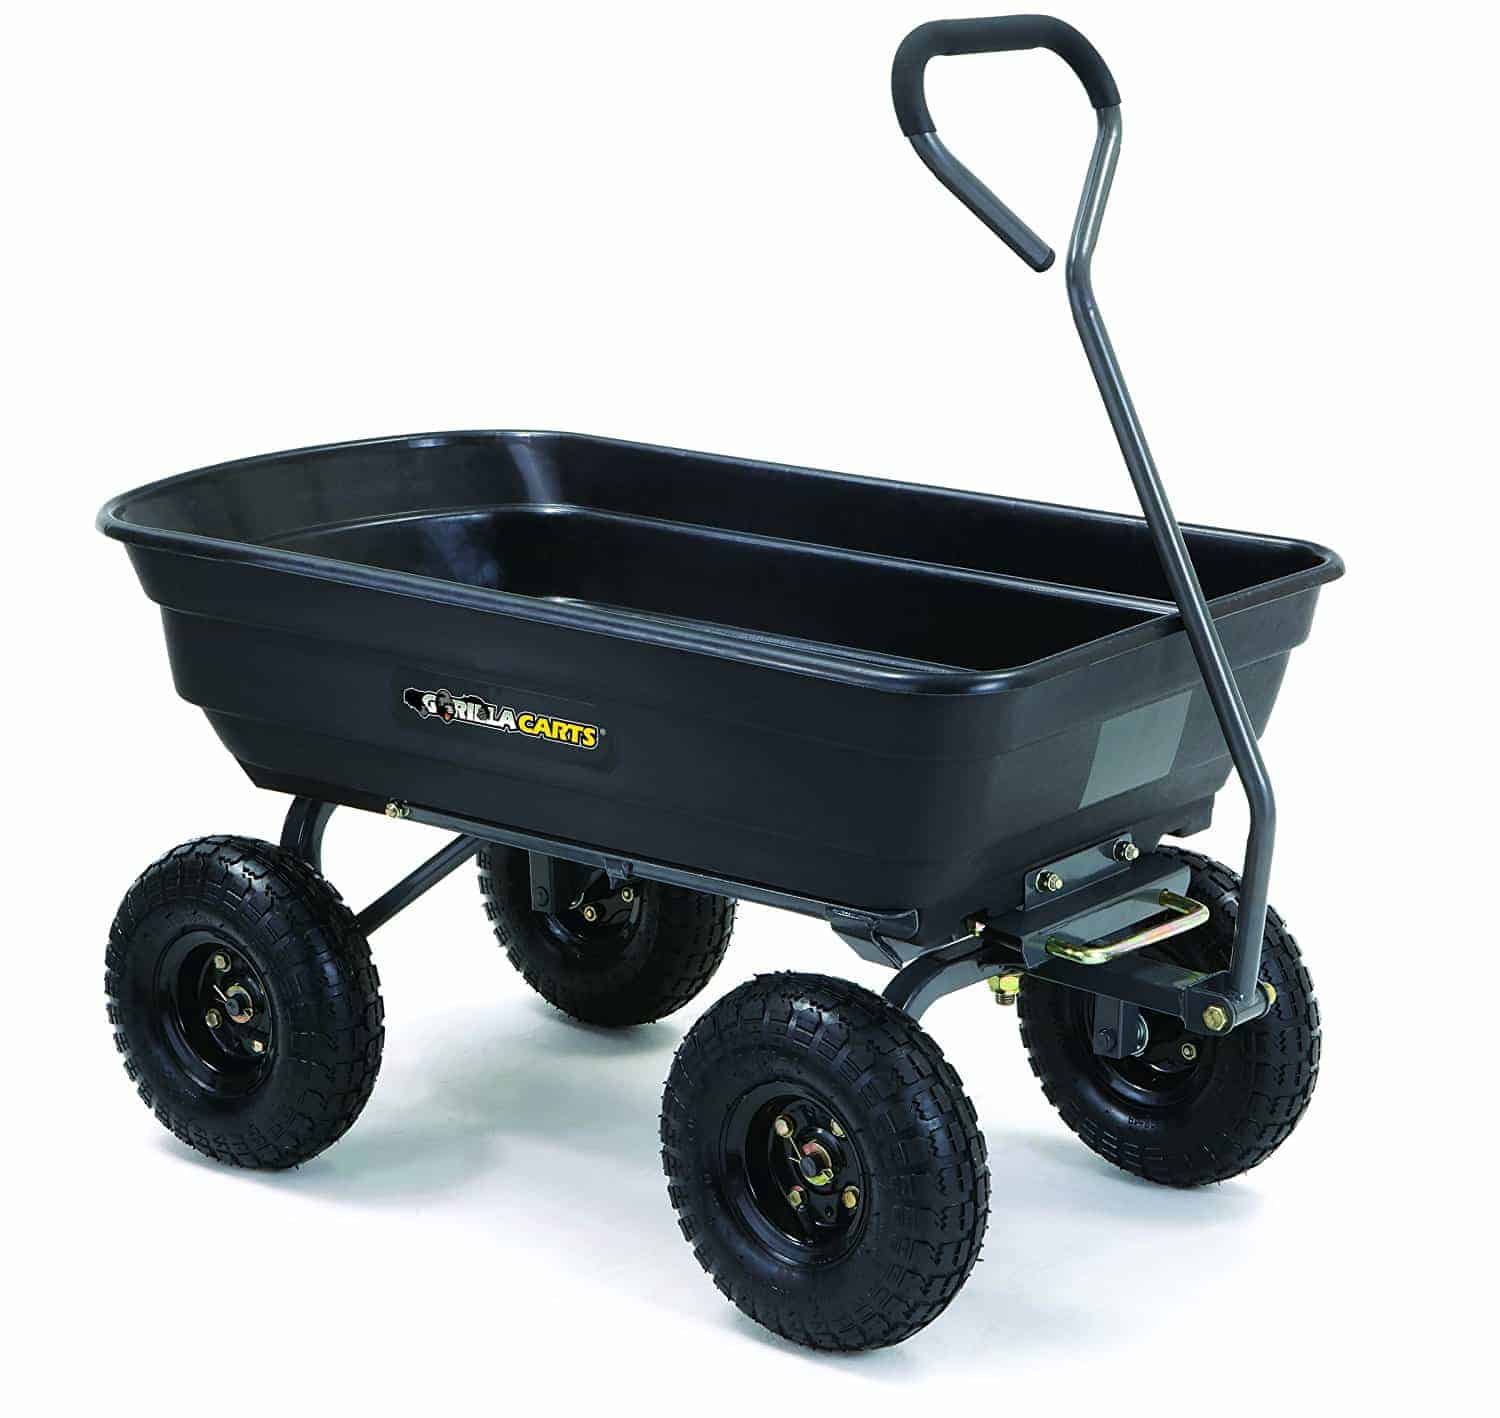 gorilla carts gormp- 12 steel dump cart